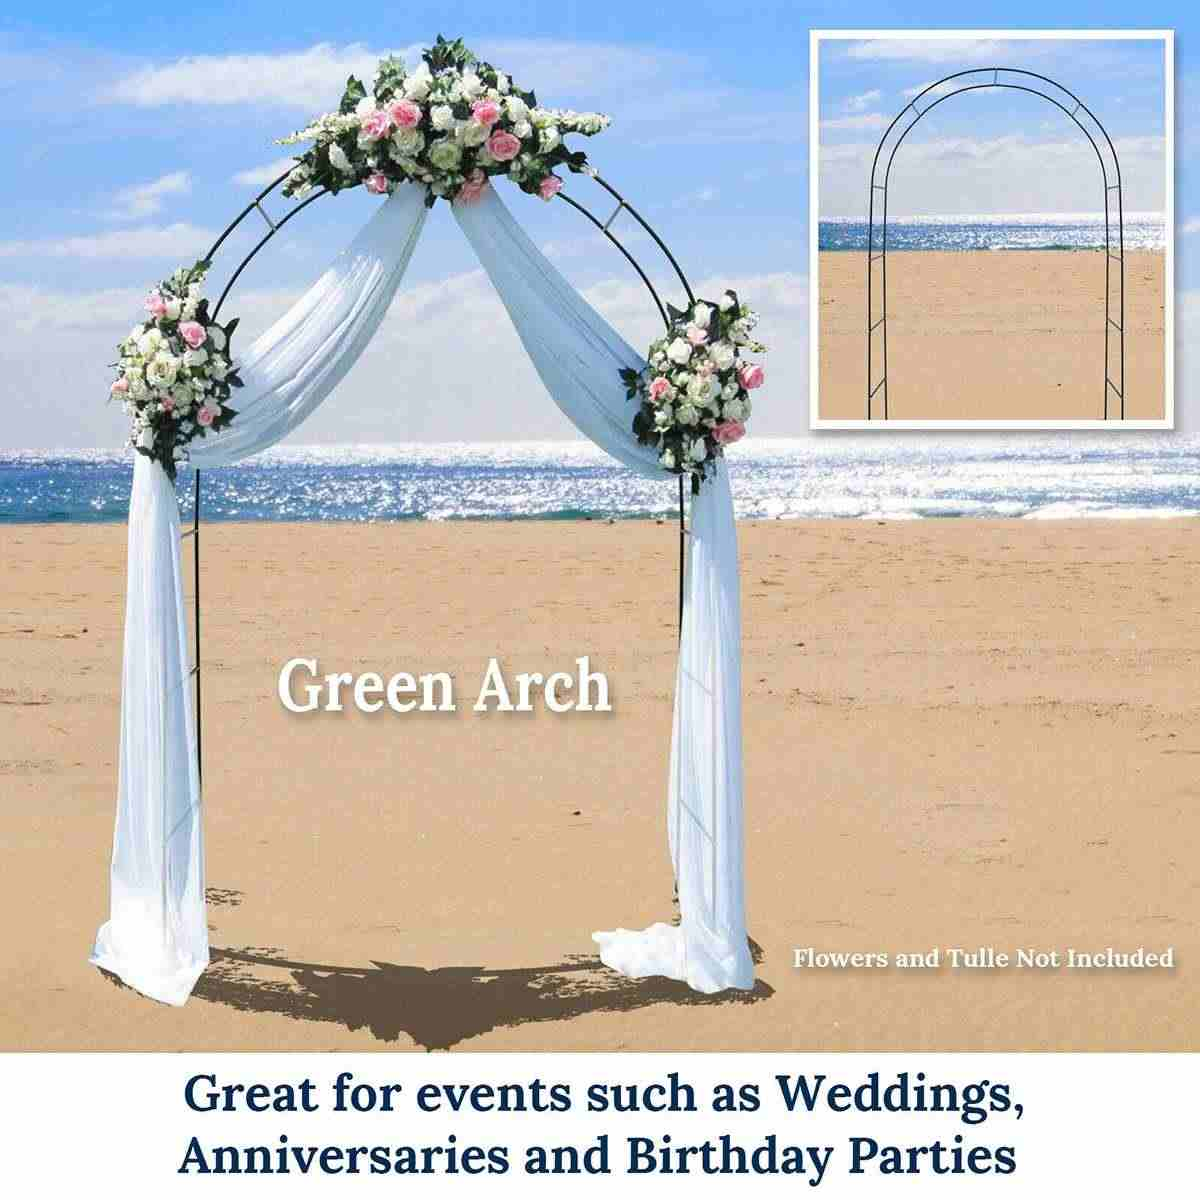 DIY Iron Wedding Arch Decorative Garden Backdrop Pergola Stand Flower Frame For Marriage birthday wedding Party Decoration